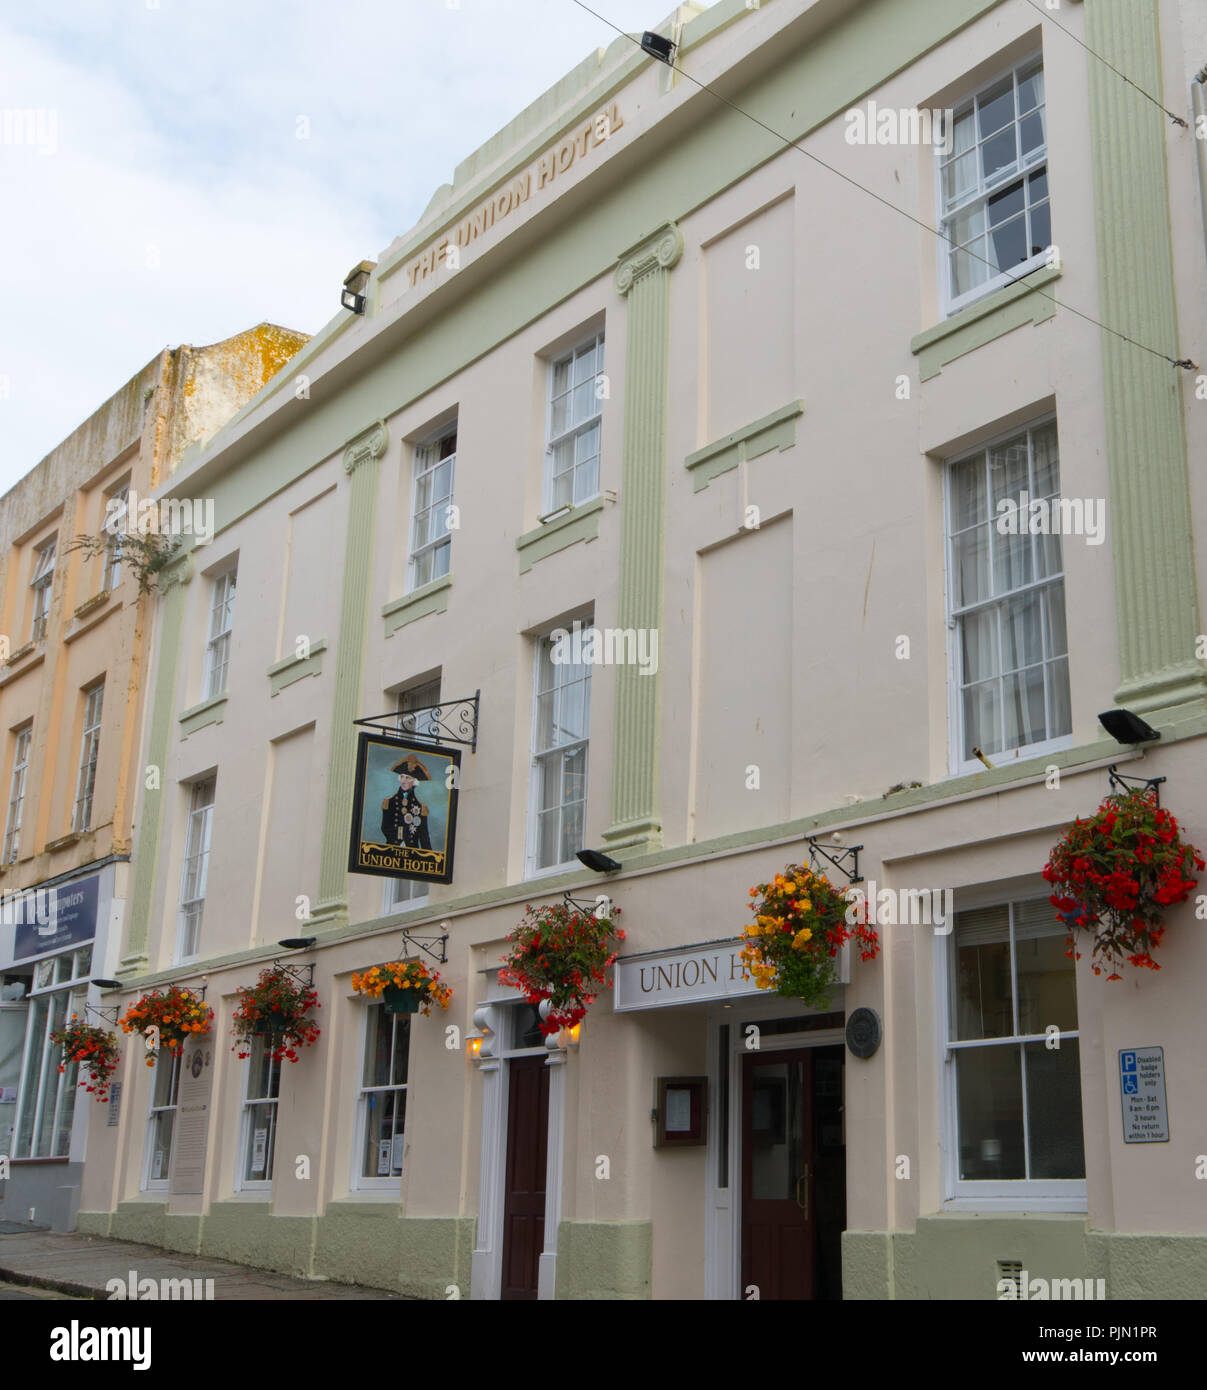 Front of the Union Inn Hotel on Chape Street in Penzance. Famously associated with Nelson - Stock Image